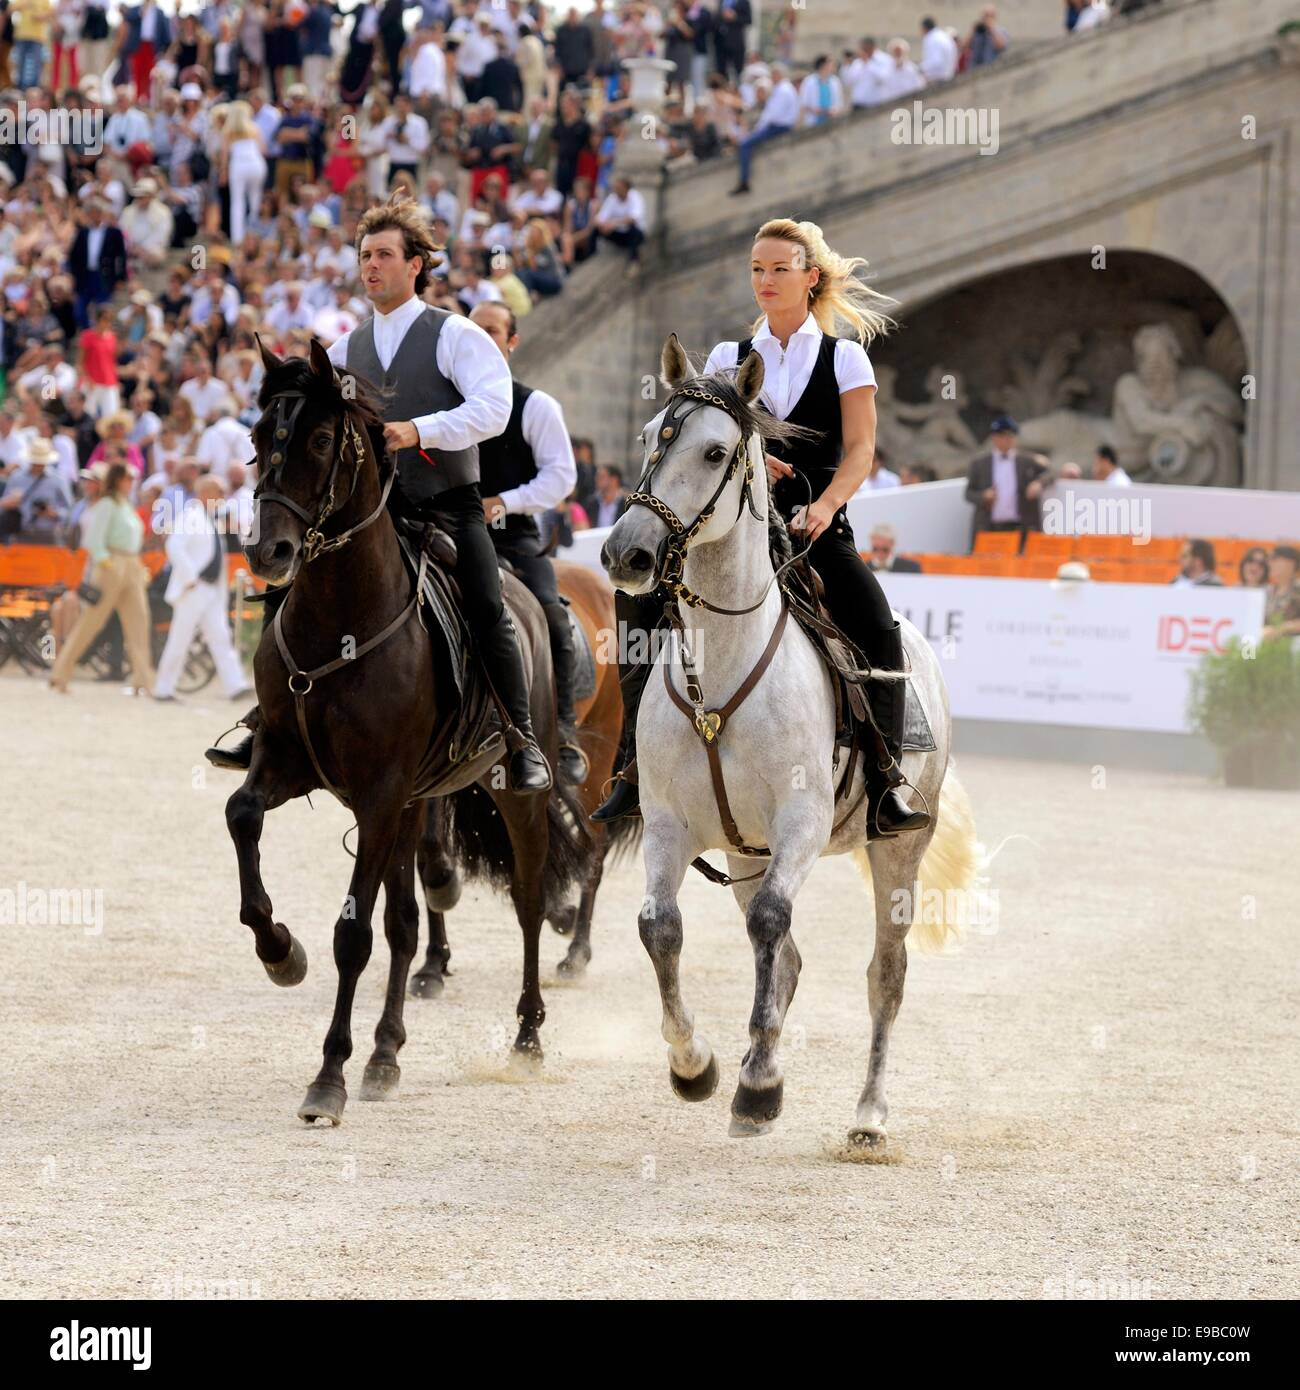 An equestrian team canter into an arena to give a display of stunt riding and horsemanship - Stock Image